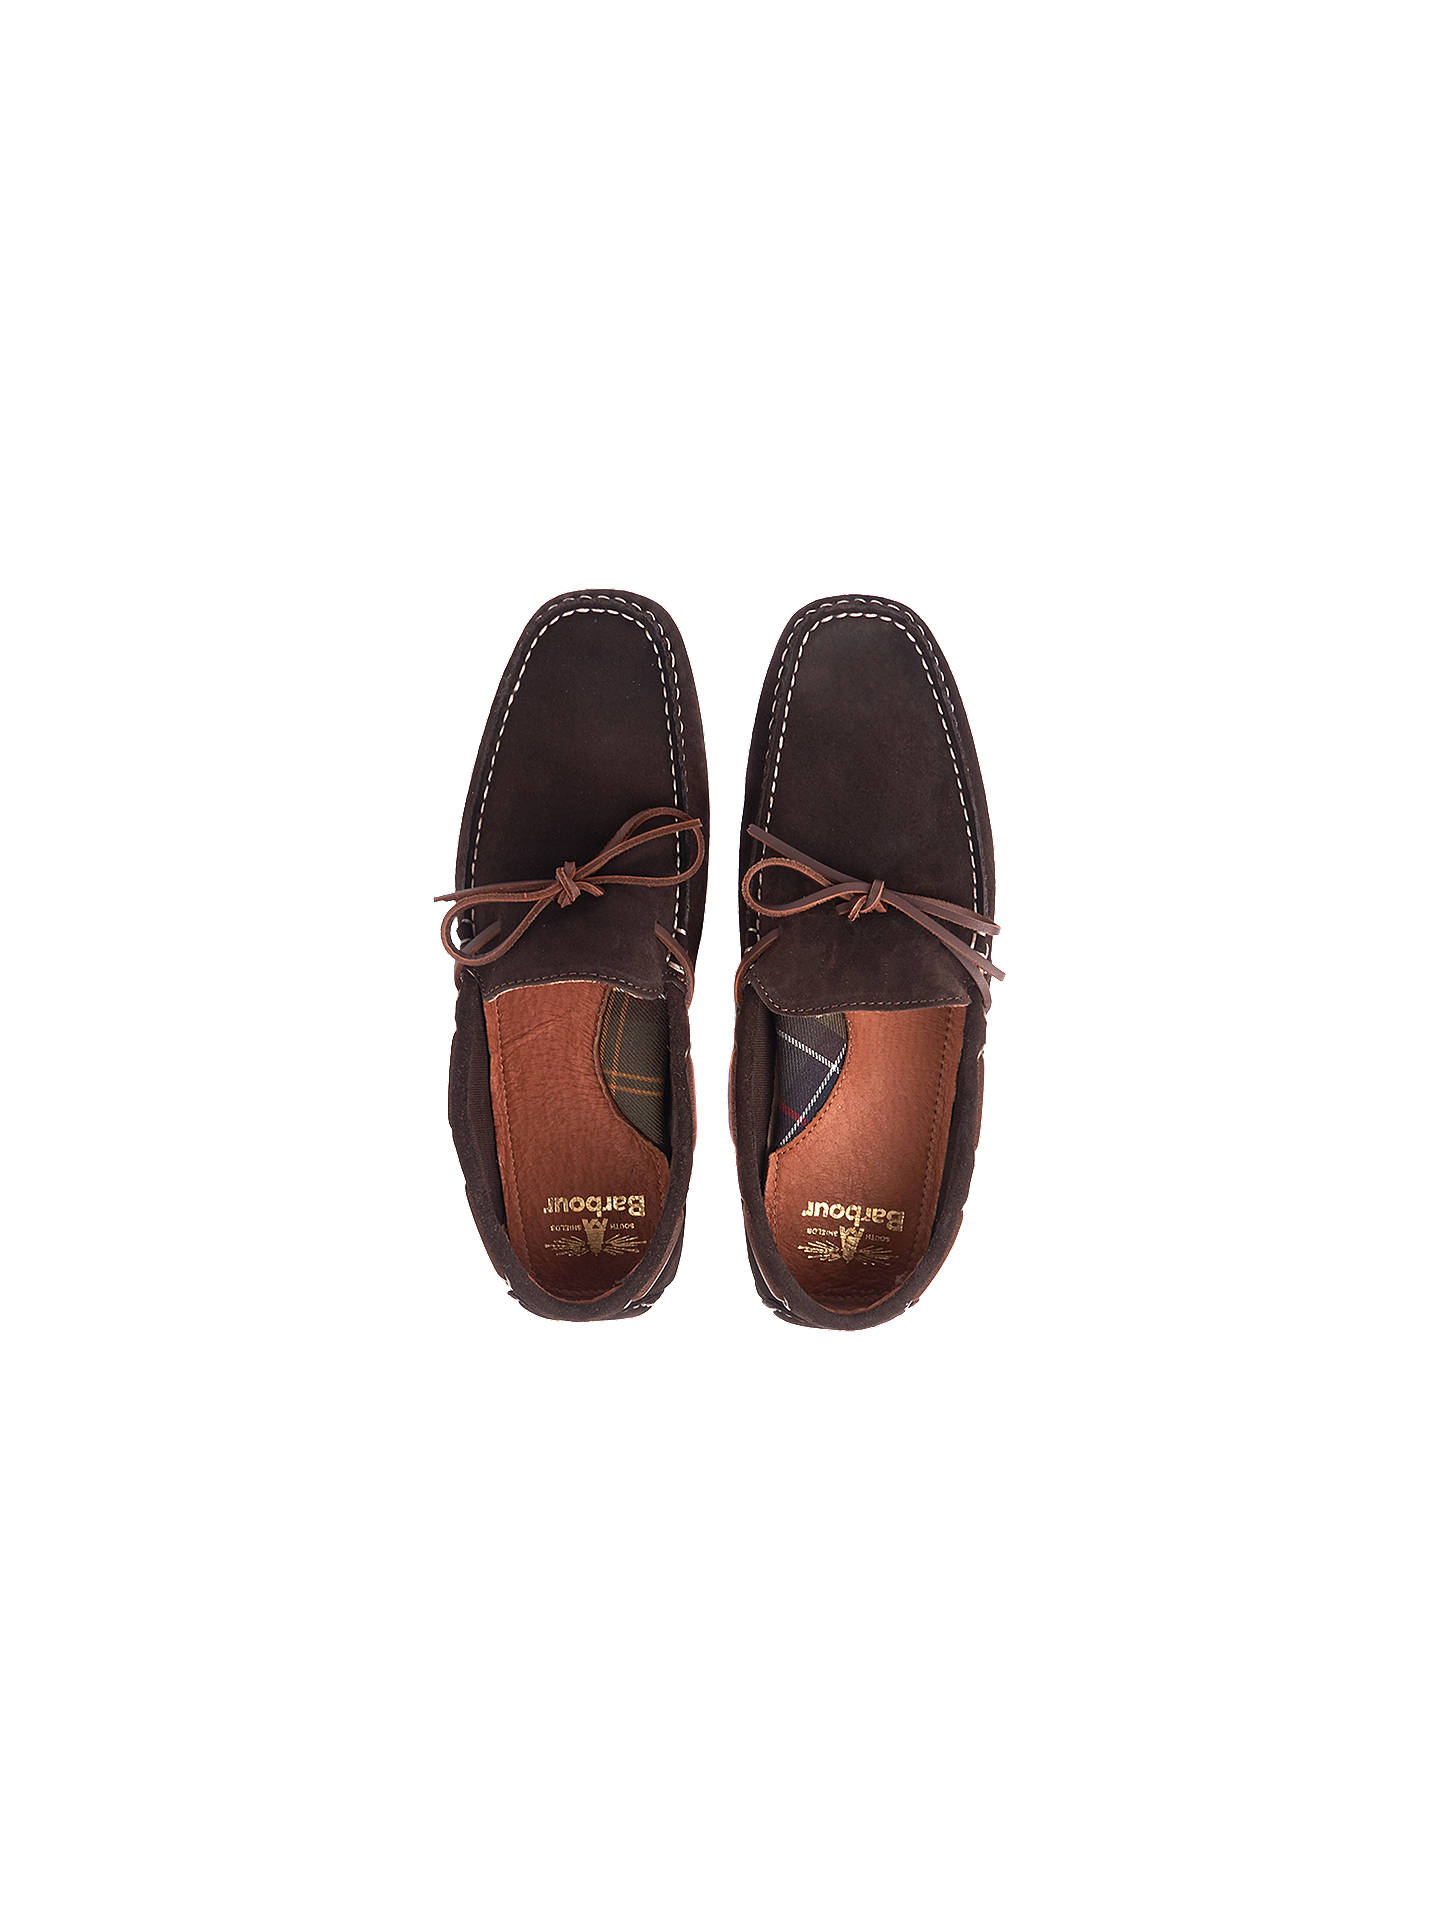 BuyBarbour Eldon Suede Penny Driver Loafers, Dark Brown, 7 Online at johnlewis.com